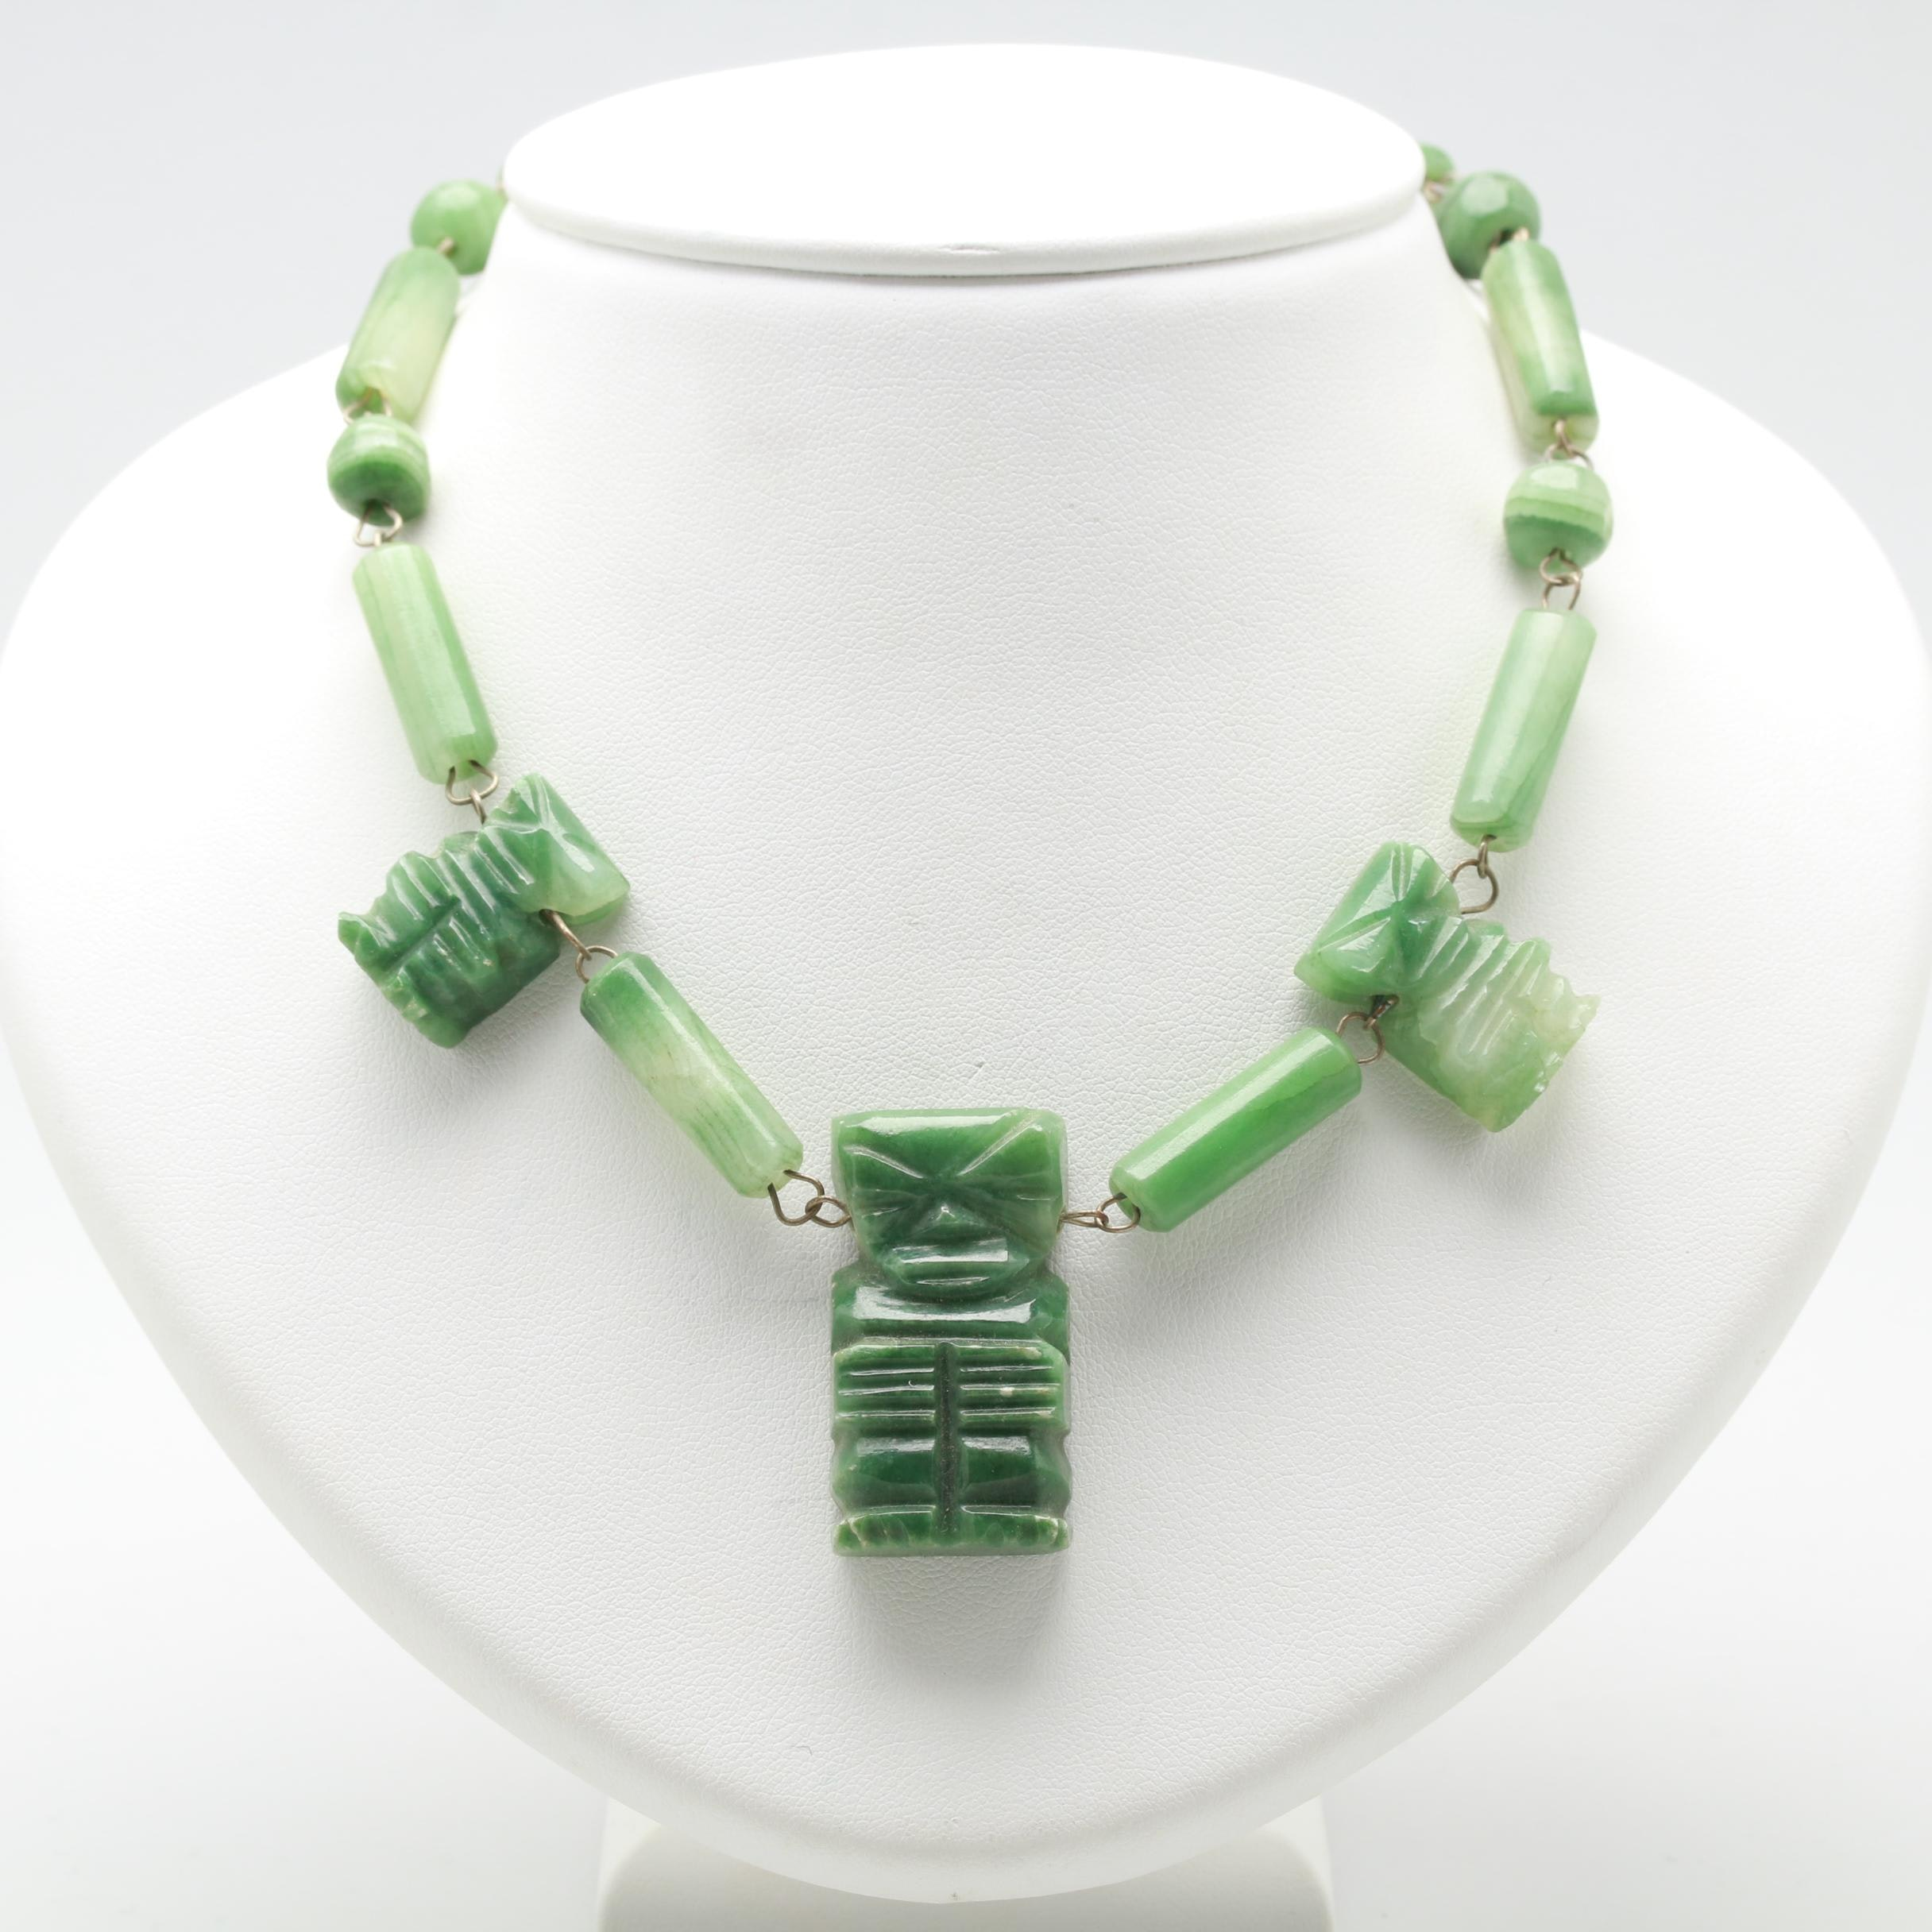 Beaded Calcite Necklace with Carved Figural Pendants